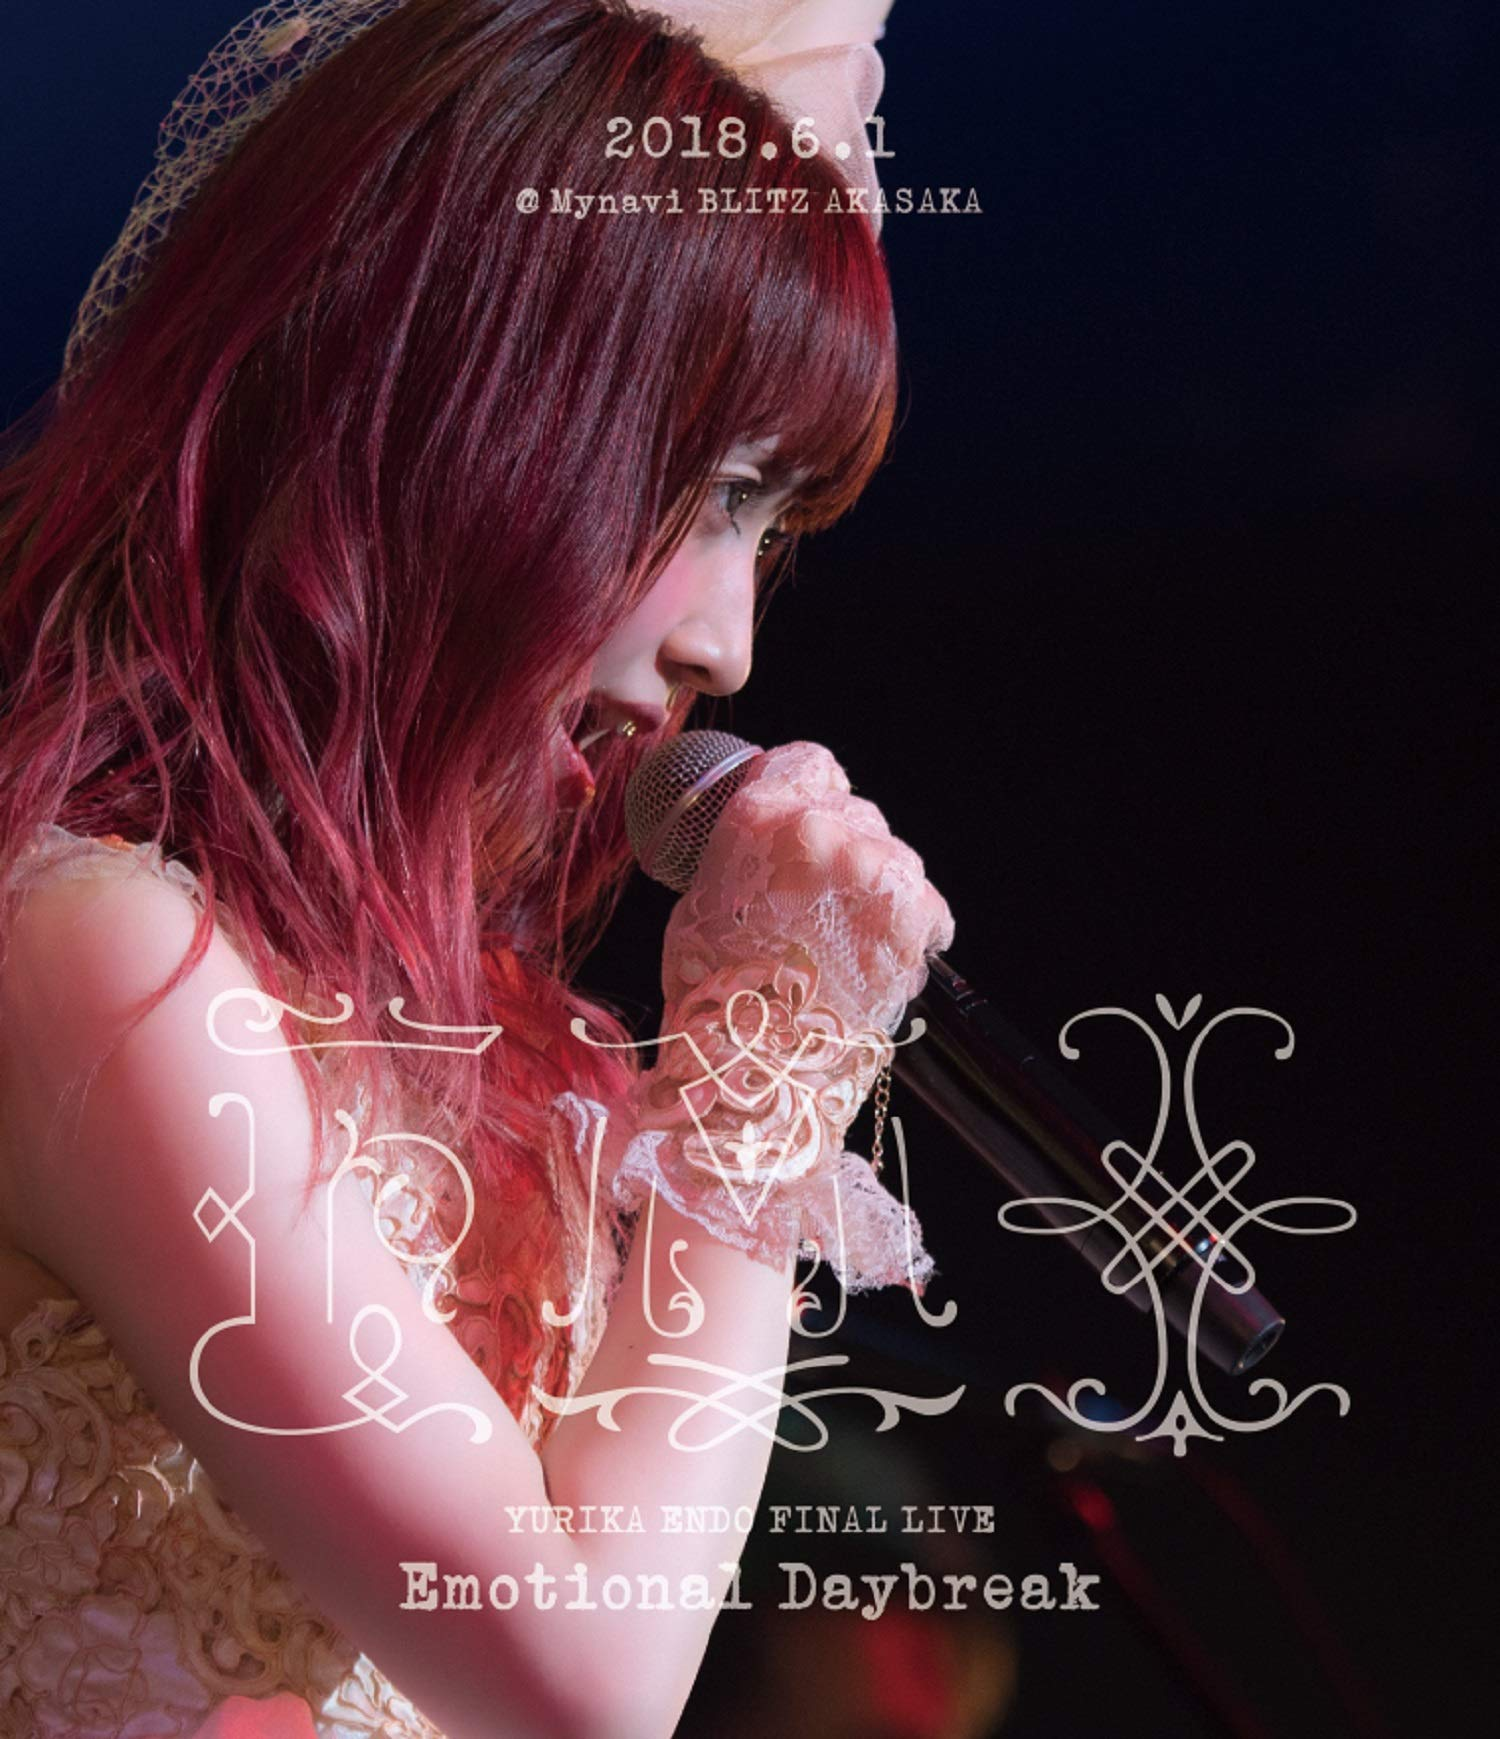 【Amazon.co.jp限定】遠藤ゆりか FINAL LIVE -Emotional Daybreak-(L判ブロマイド付き) [Blu-ray]